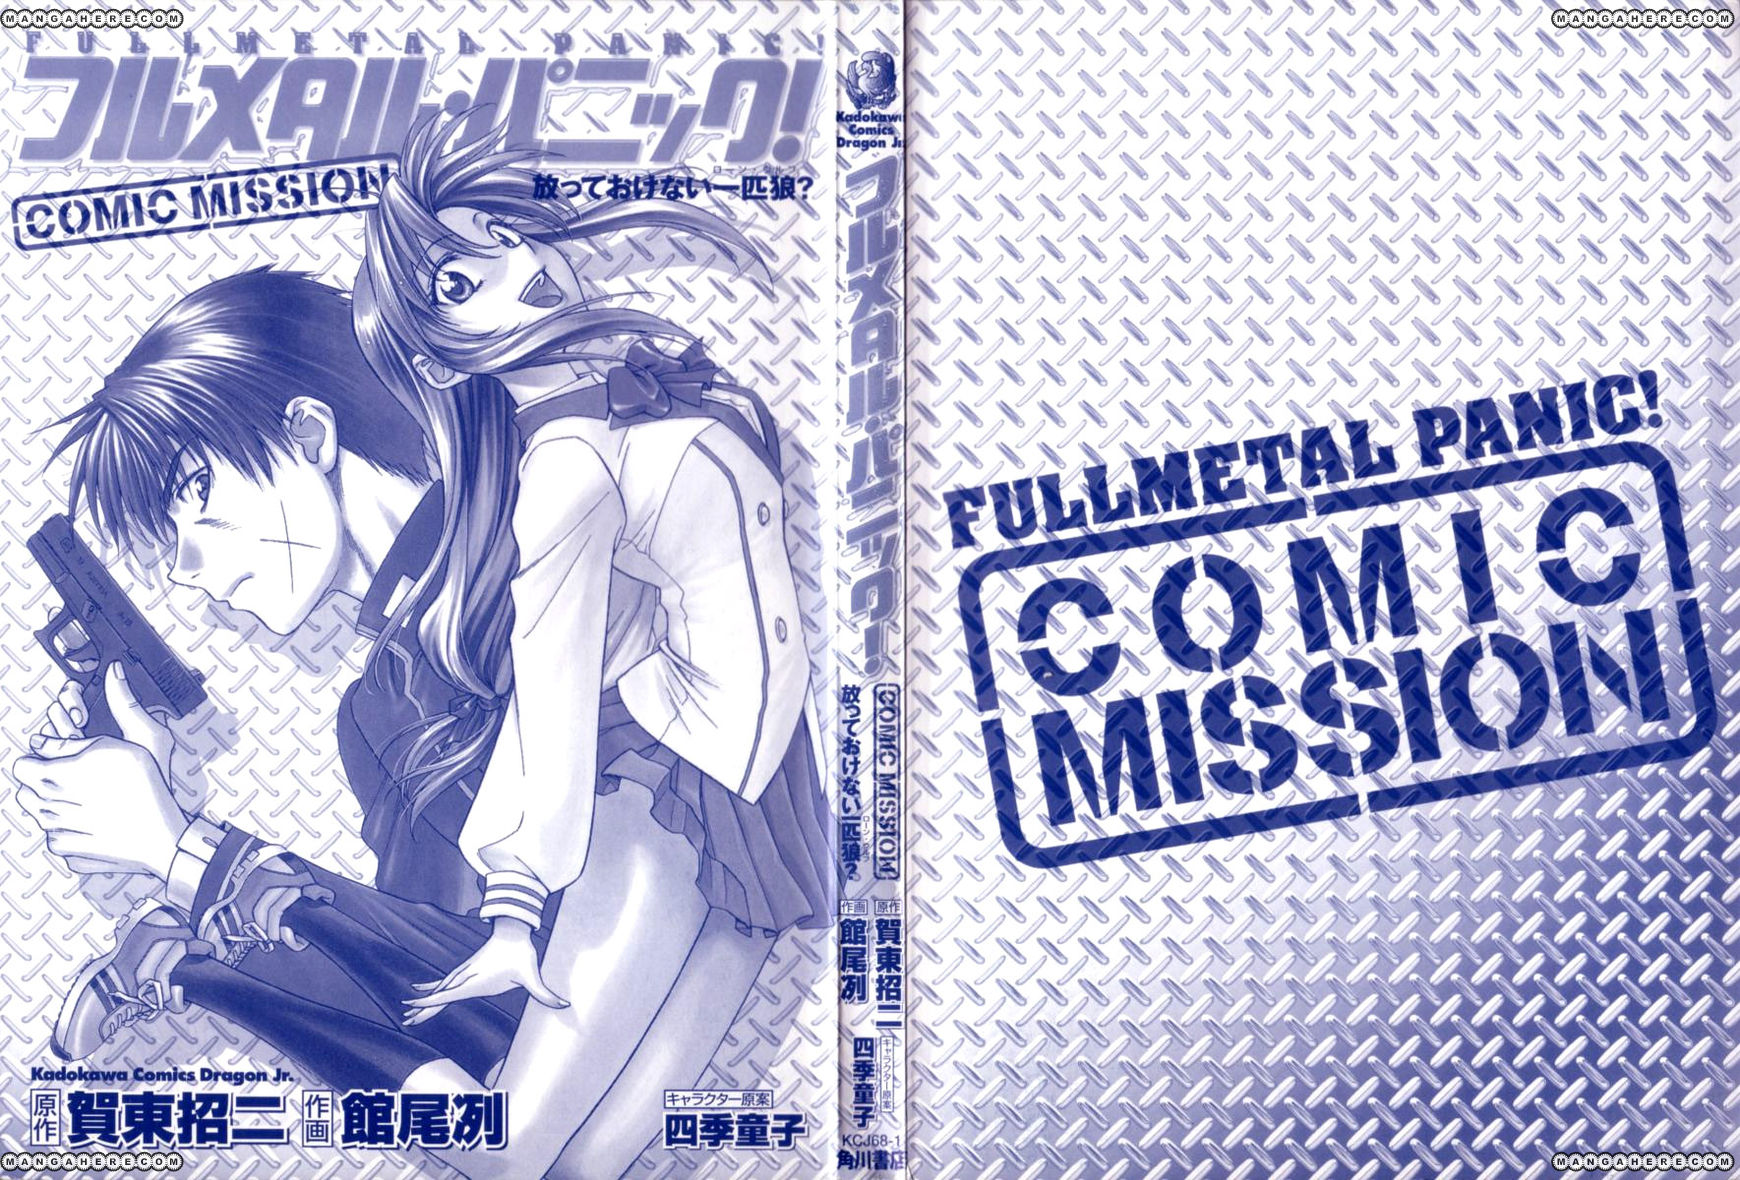 Full Metal Panic Comic Mission 5.5 Page 3